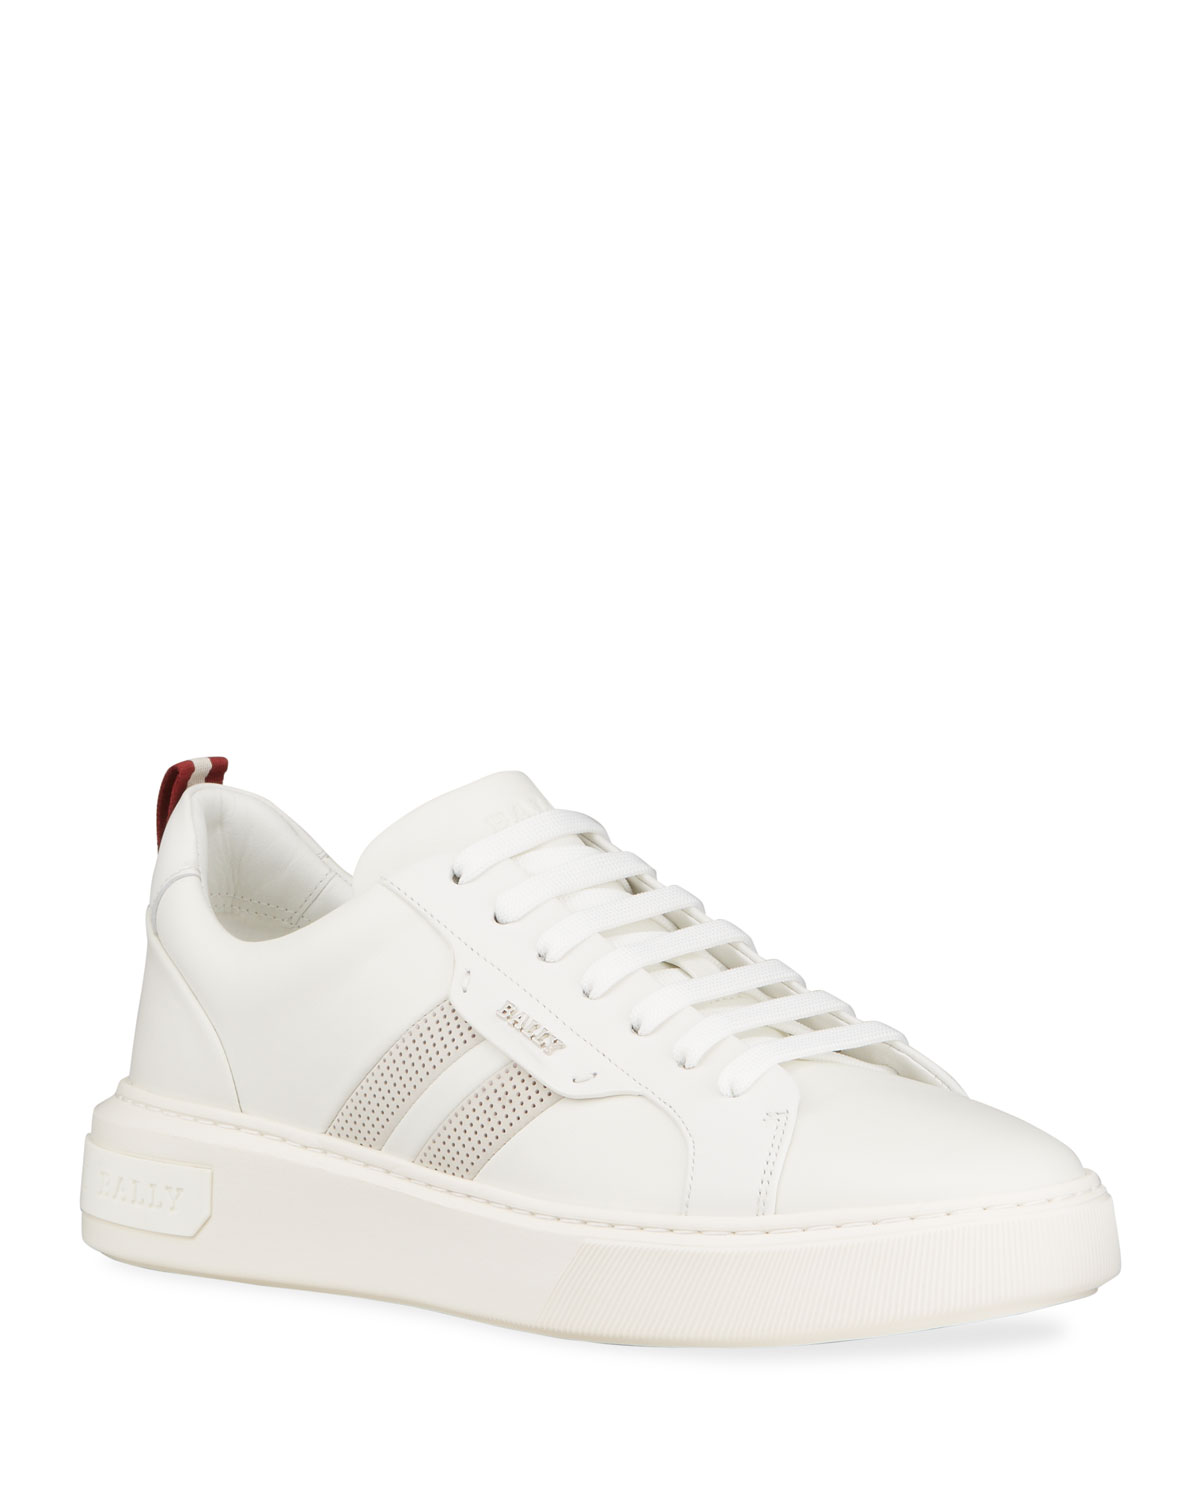 Bally Men's Maxim 7 Striped Leather Low-Top Sneakers